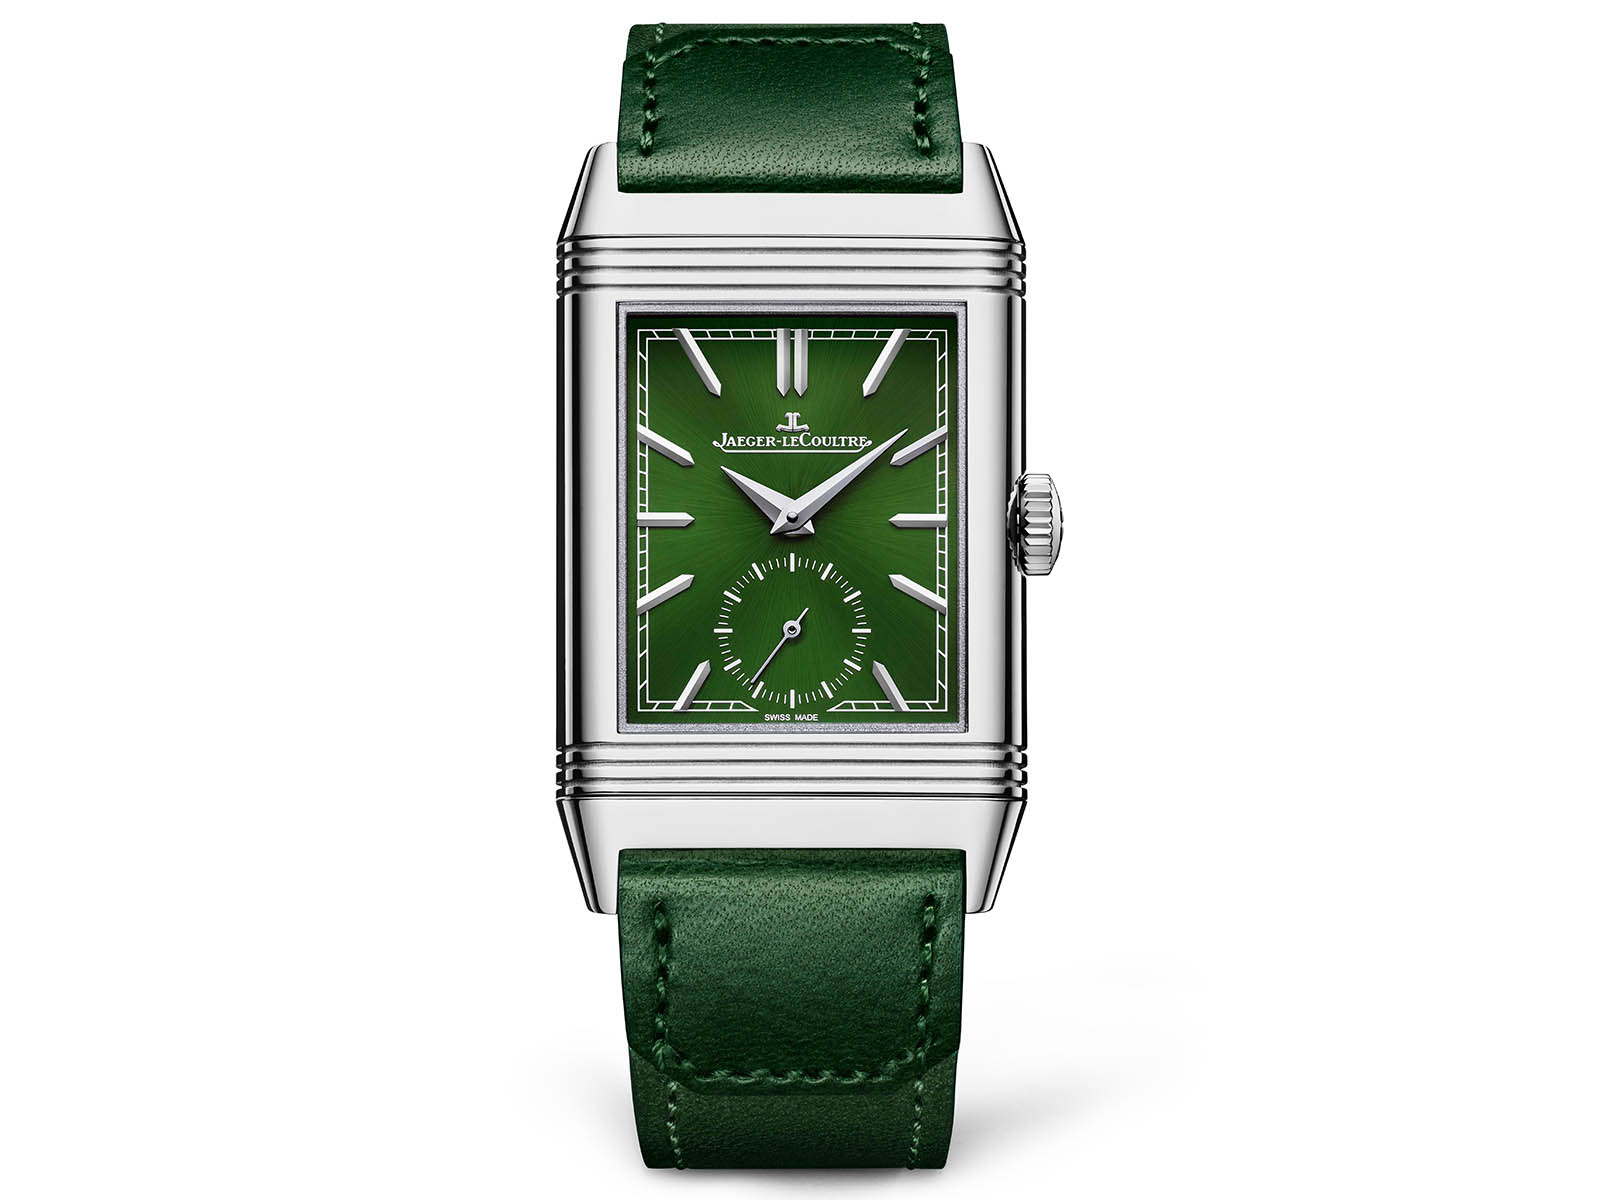 q3978430-jaeger-lecoultre-reverso-tribute-small-seconds-green-dial-3.jpg